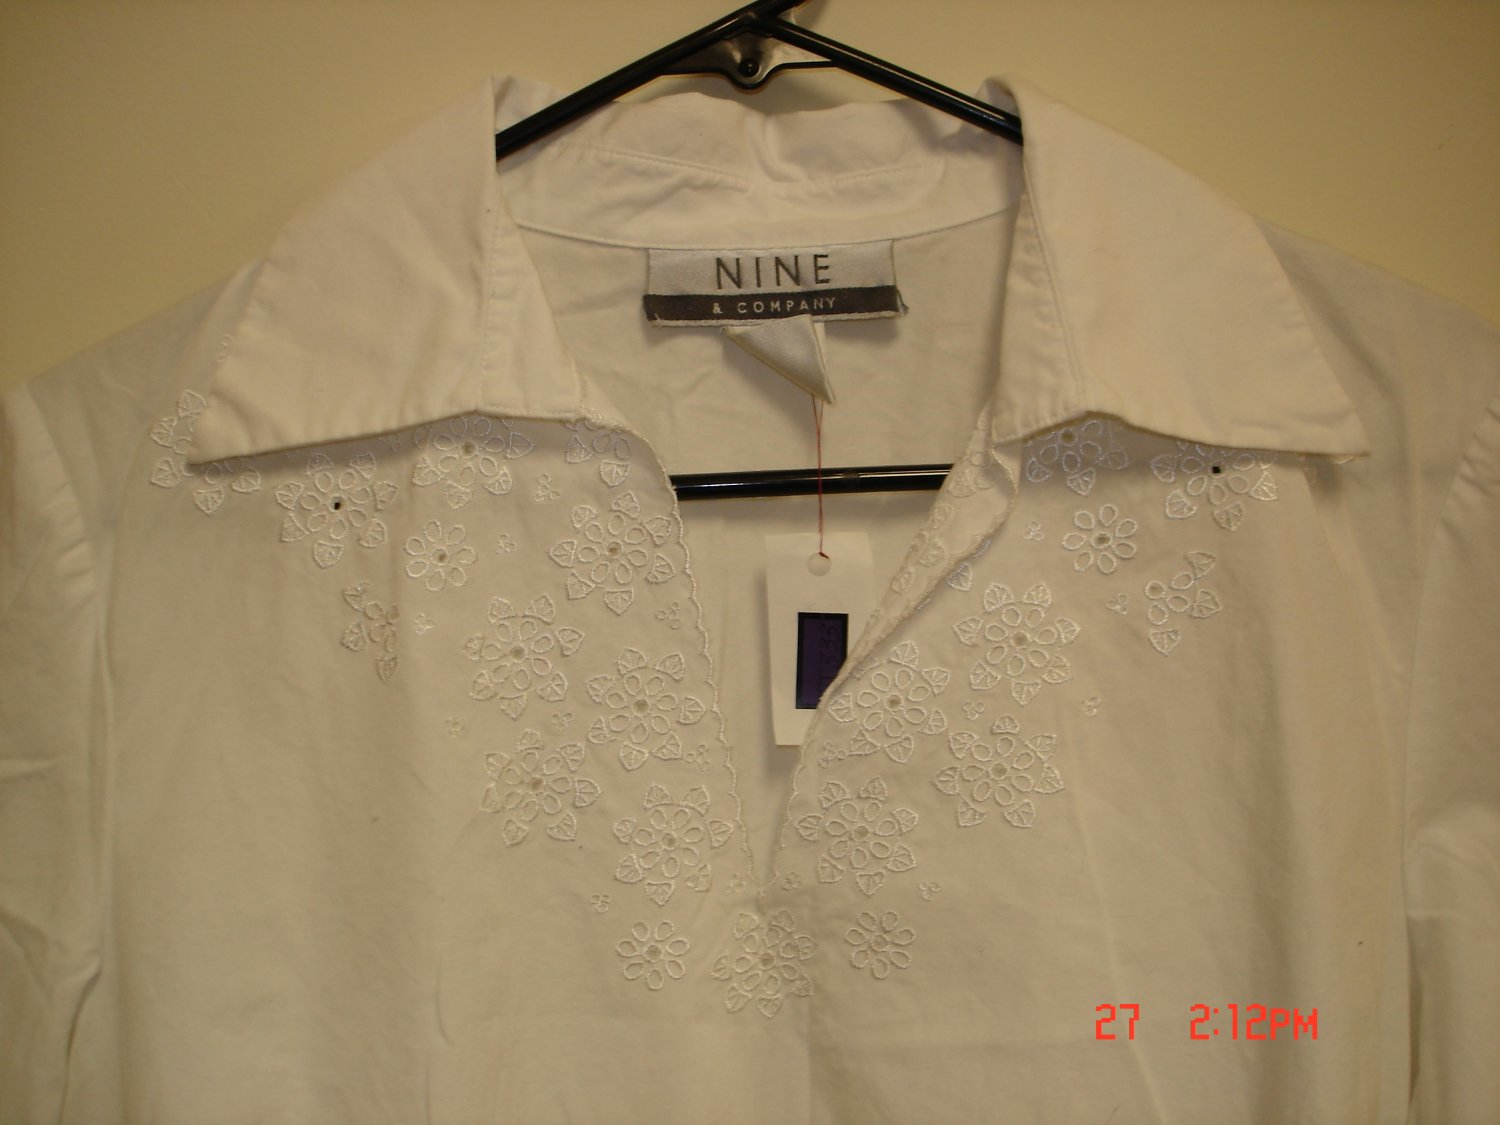 Nine & Company Blouse, Size 8